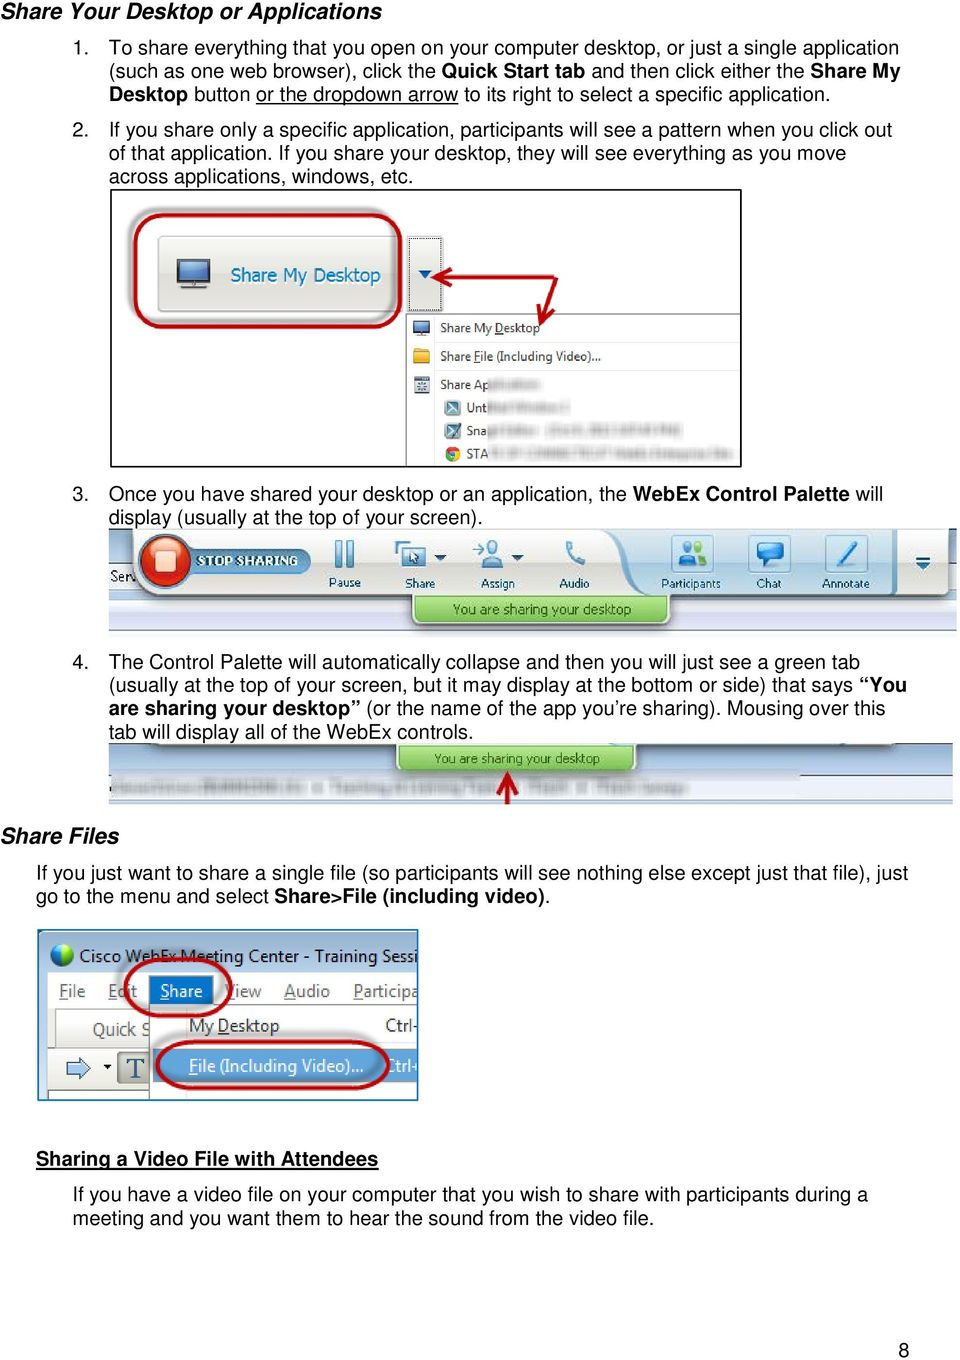 How to Host WebEx Meetings - PDF